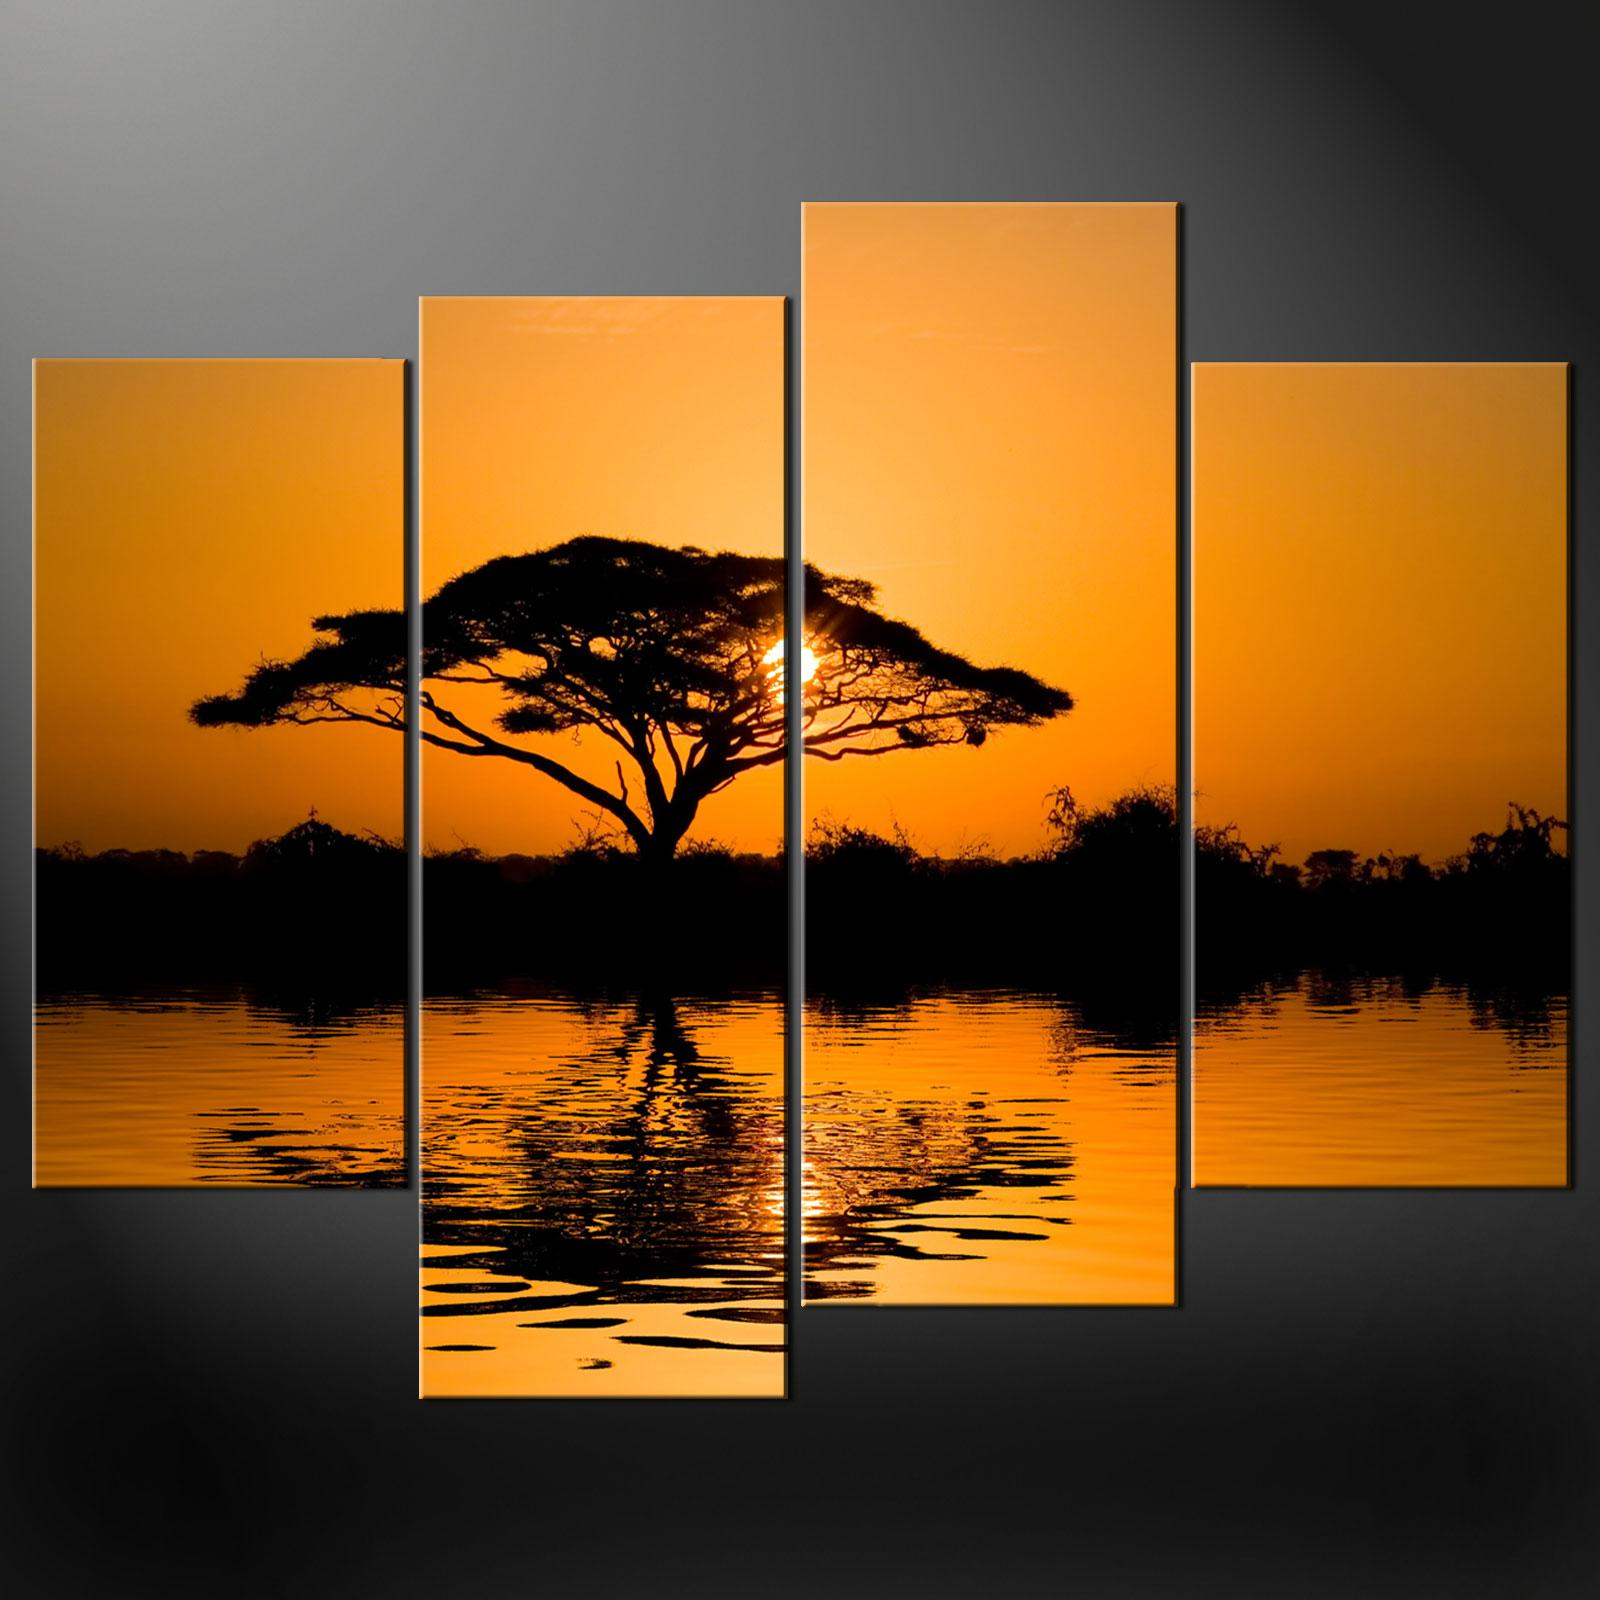 Buddha Decorations For The Home Framed 4 Panel Large African Wall Art Decor Modern Sunset